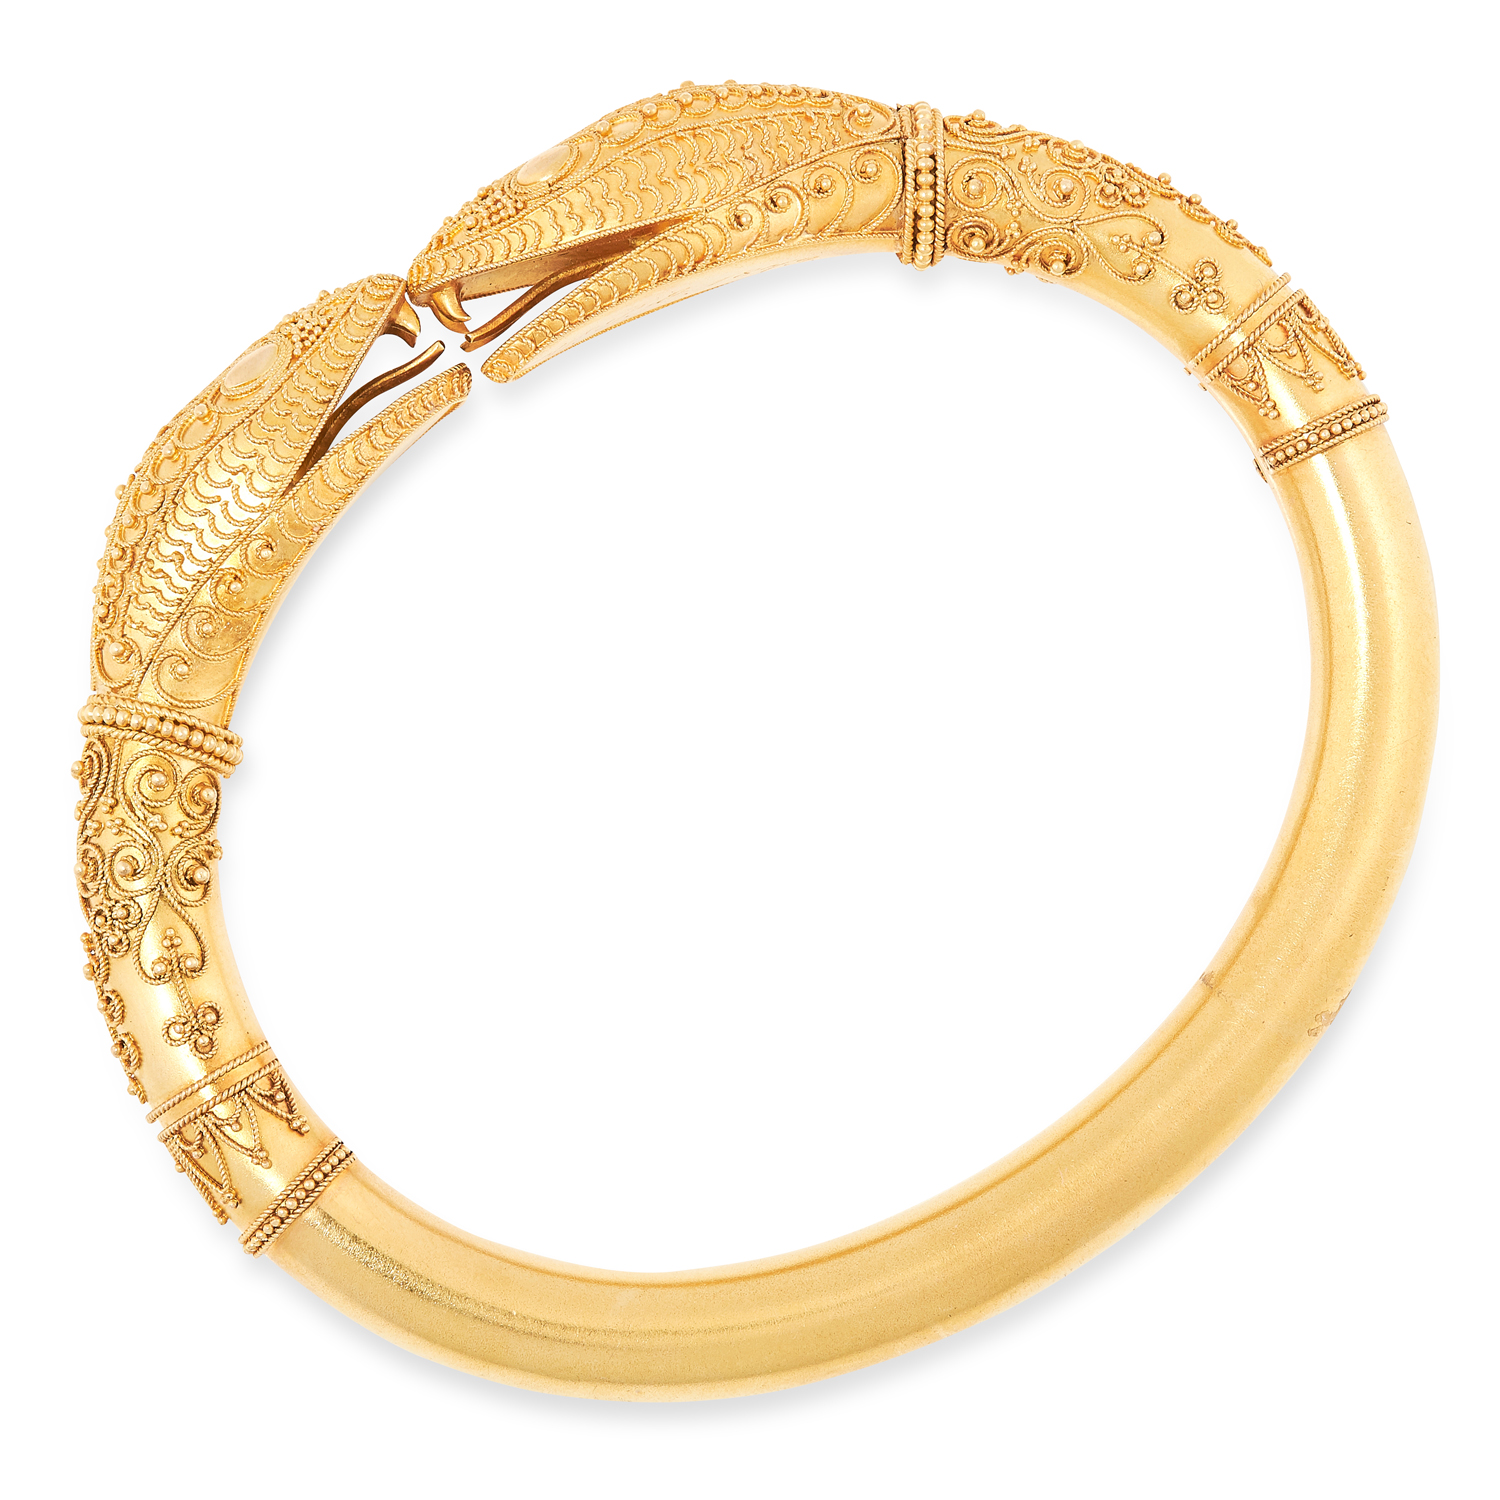 AN ANTIQUE DOUBLE SNAKE HEAD BANGLE, CIRCA 1879 in high carat yellow gold, the body designed as a - Image 2 of 2